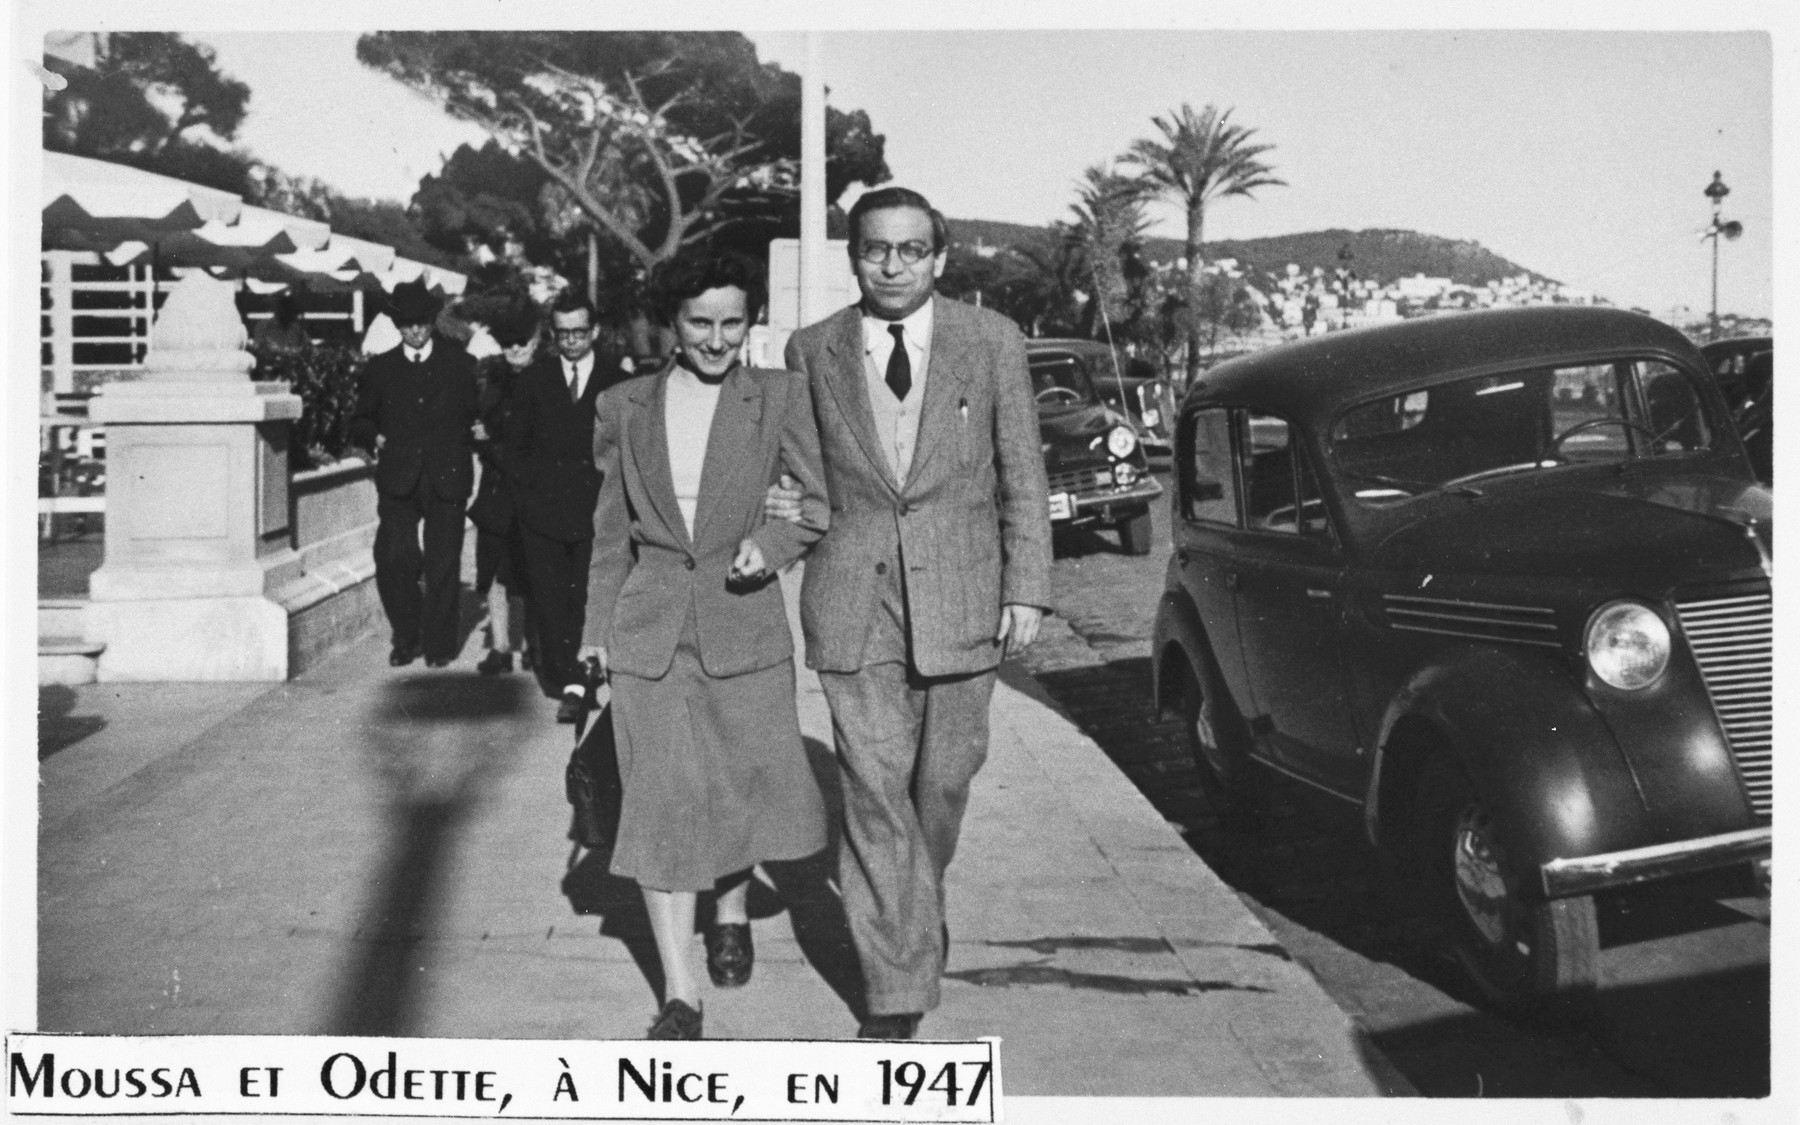 Jewish rescuers Moussa Abadi and Odette Rosenstock walk along a street in Nice after the war.